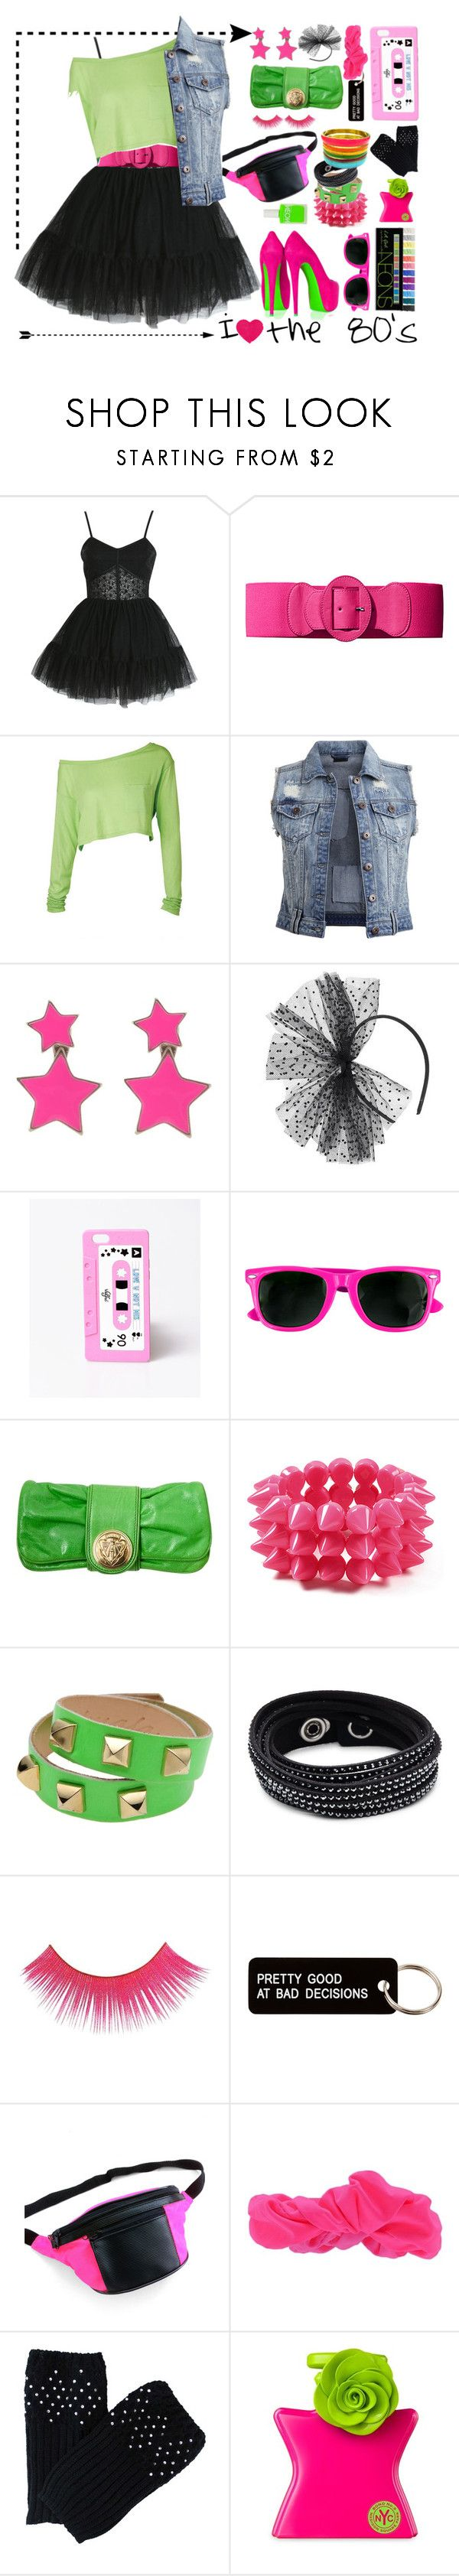 """""""I Heart the 80's"""" by maheanani on Polyvore featuring Miss Selfridge, H&M, Vila Milano, Pilgrim, Dorothy Perkins, Valfré, fred flare, Gucci, Amrita Singh and Almala"""